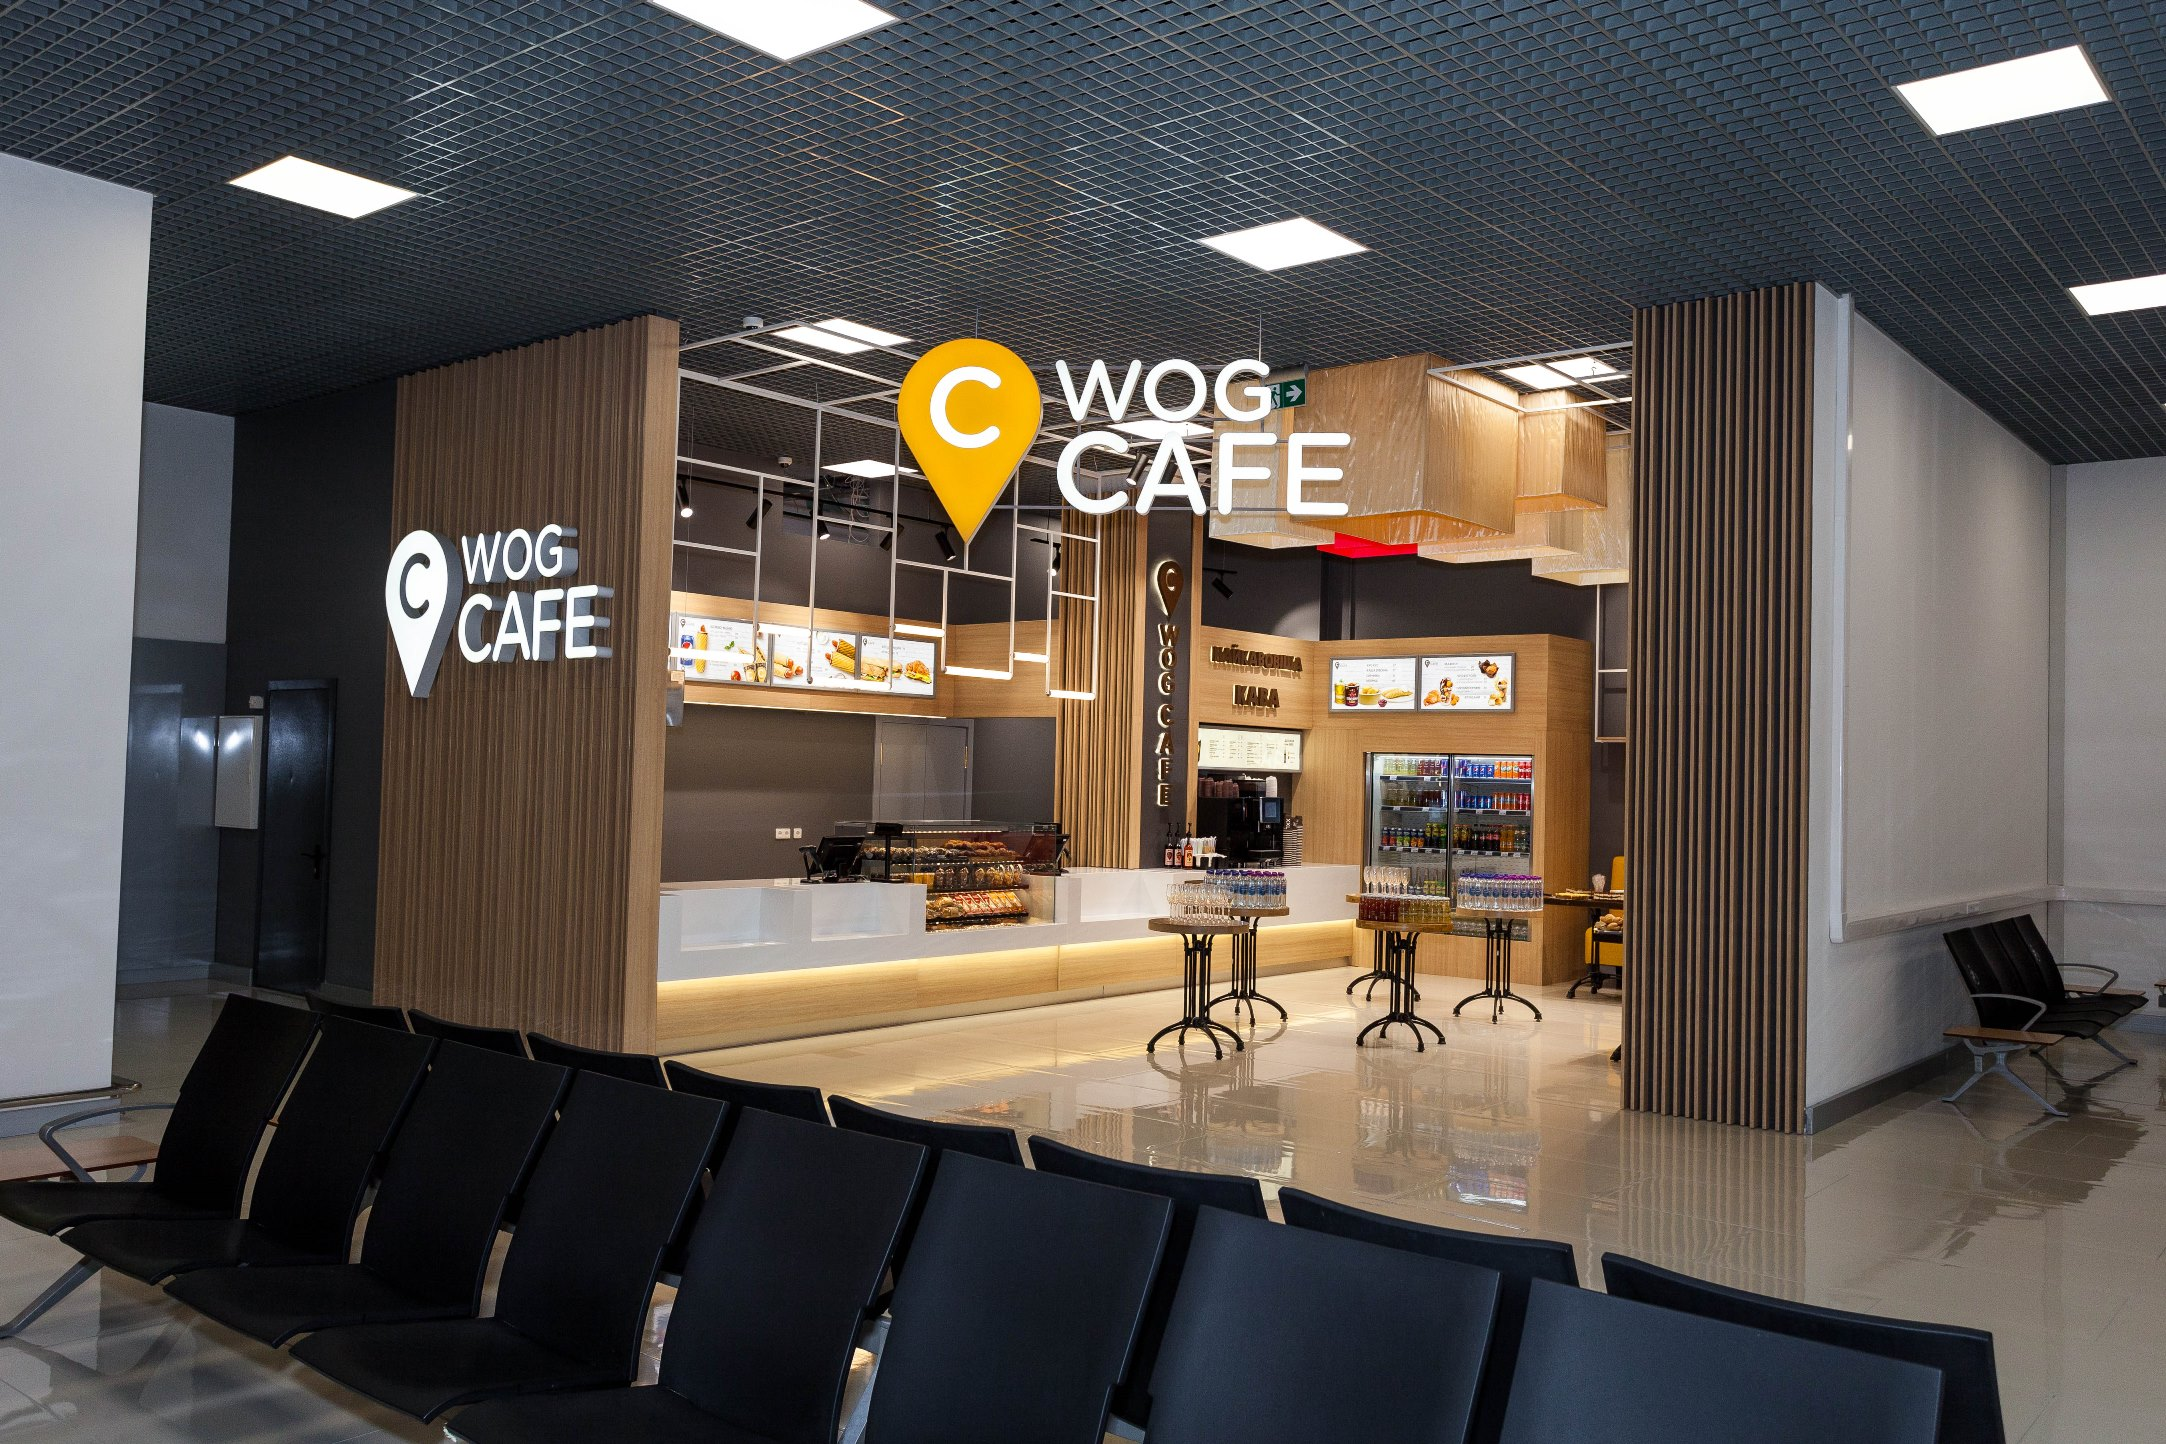 Its second year presence at 'Kyiv' airport WOG CAFE celebrates by opening a new cafe